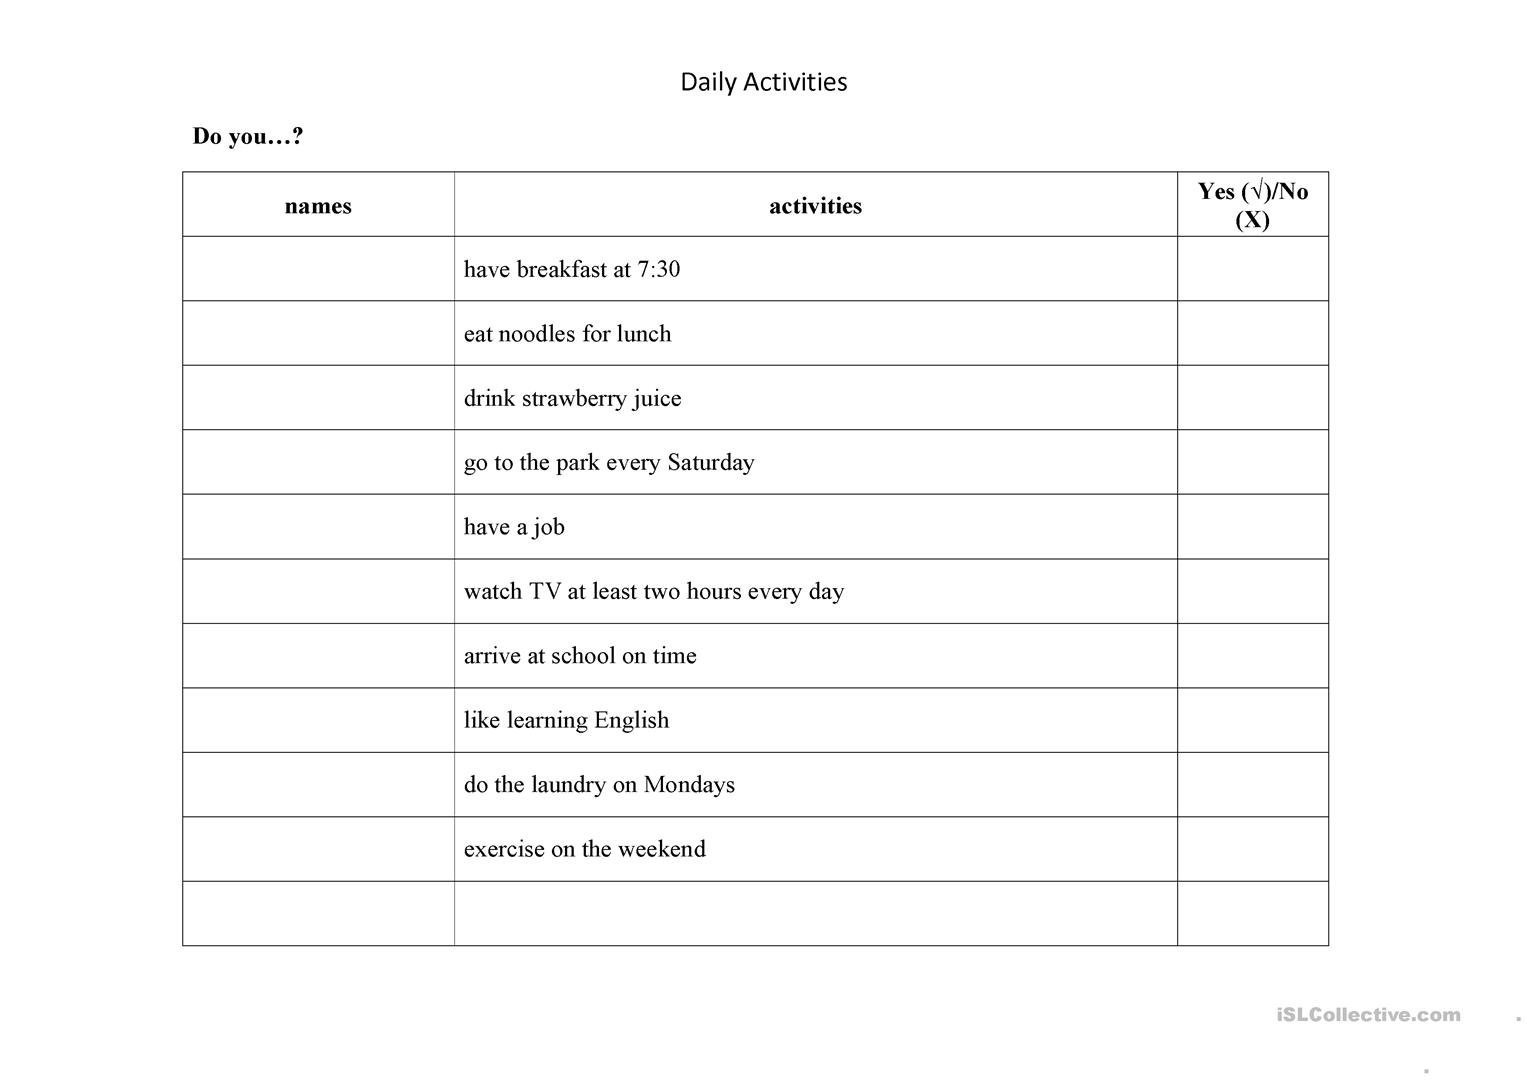 Daily Activities Quesionnaire Worksheet